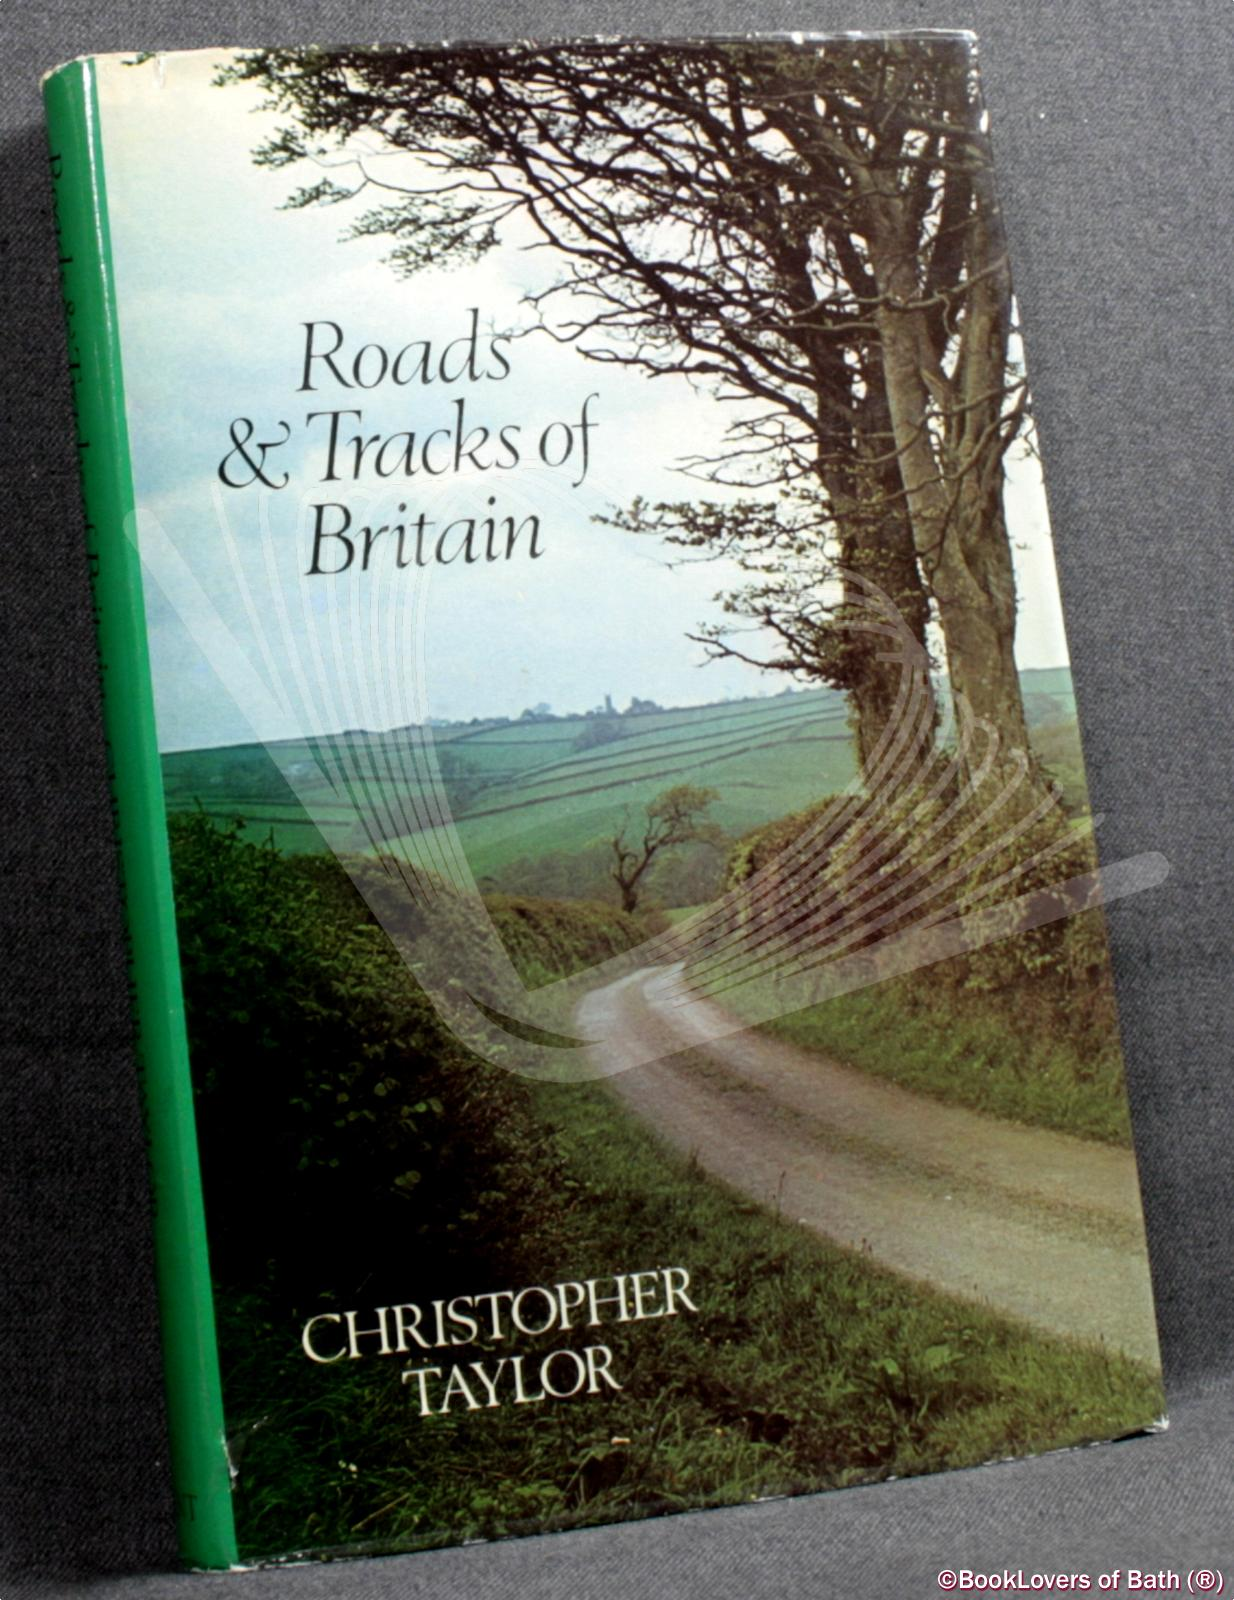 Roads & Tracks of Britain - Christopher Taylor